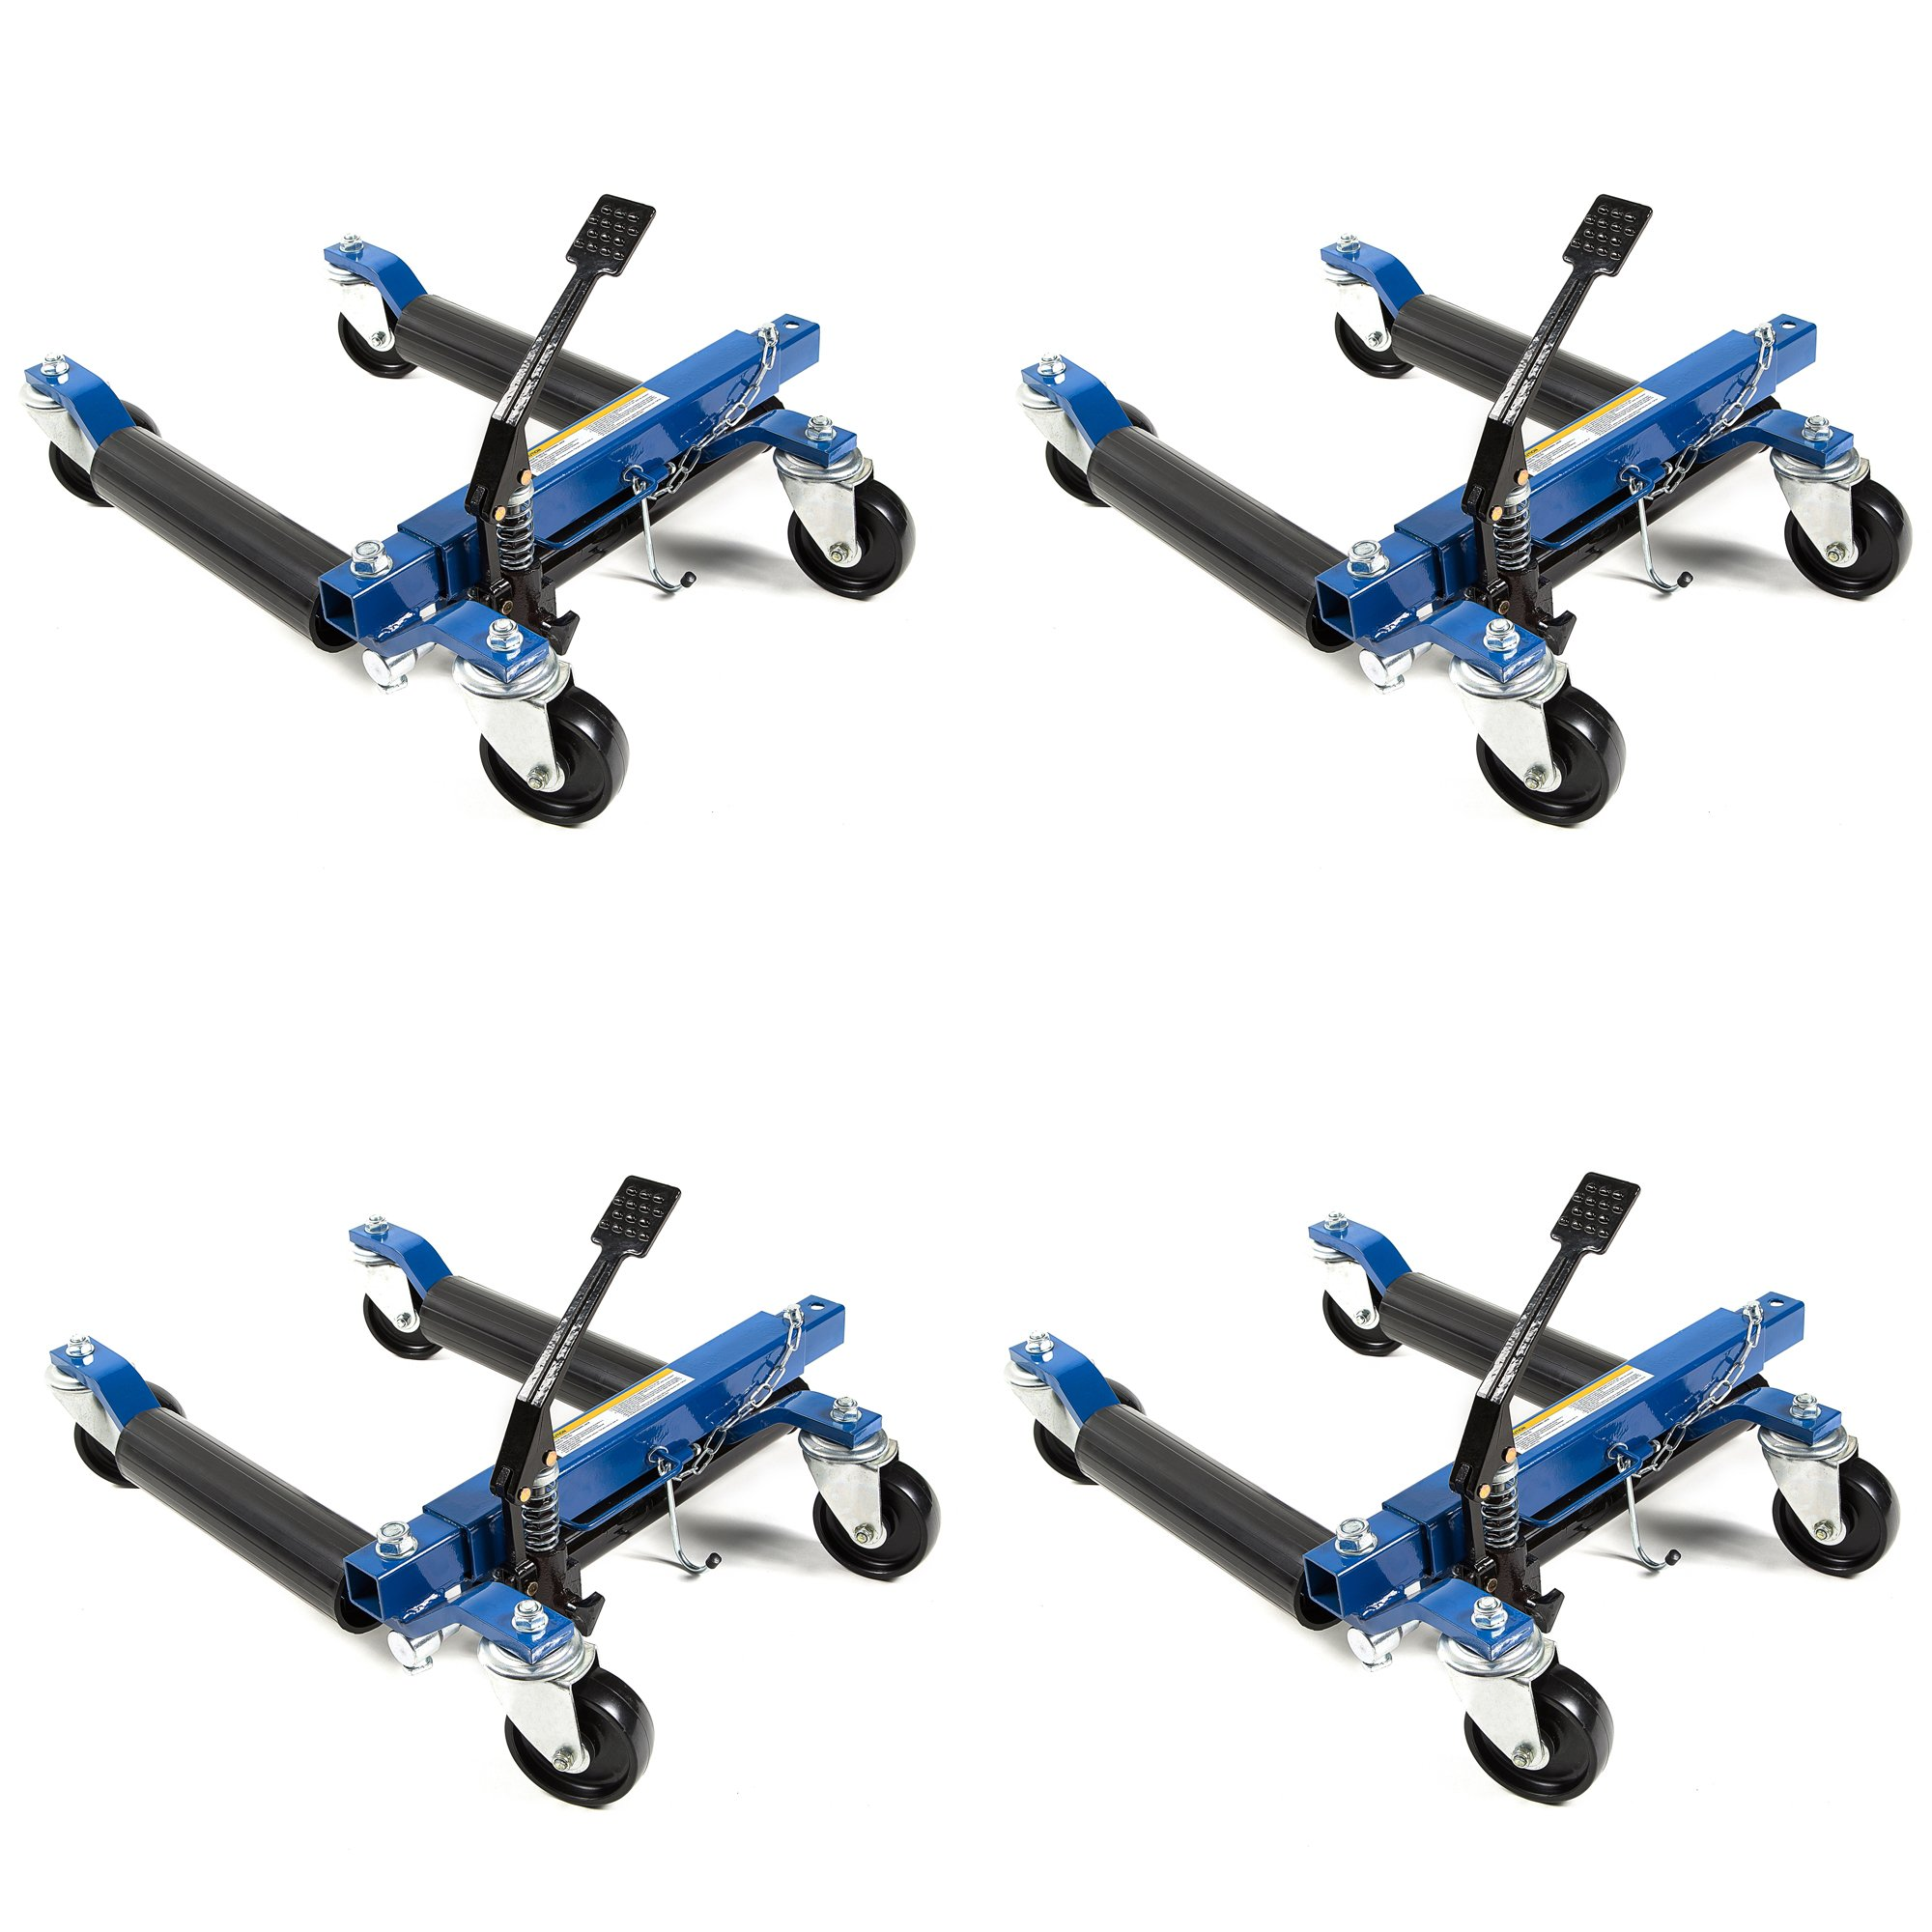 Capri Tools 21085 Hydraulic Car Positioning 12 inch Tire Jack/Dolly (4-Pack)